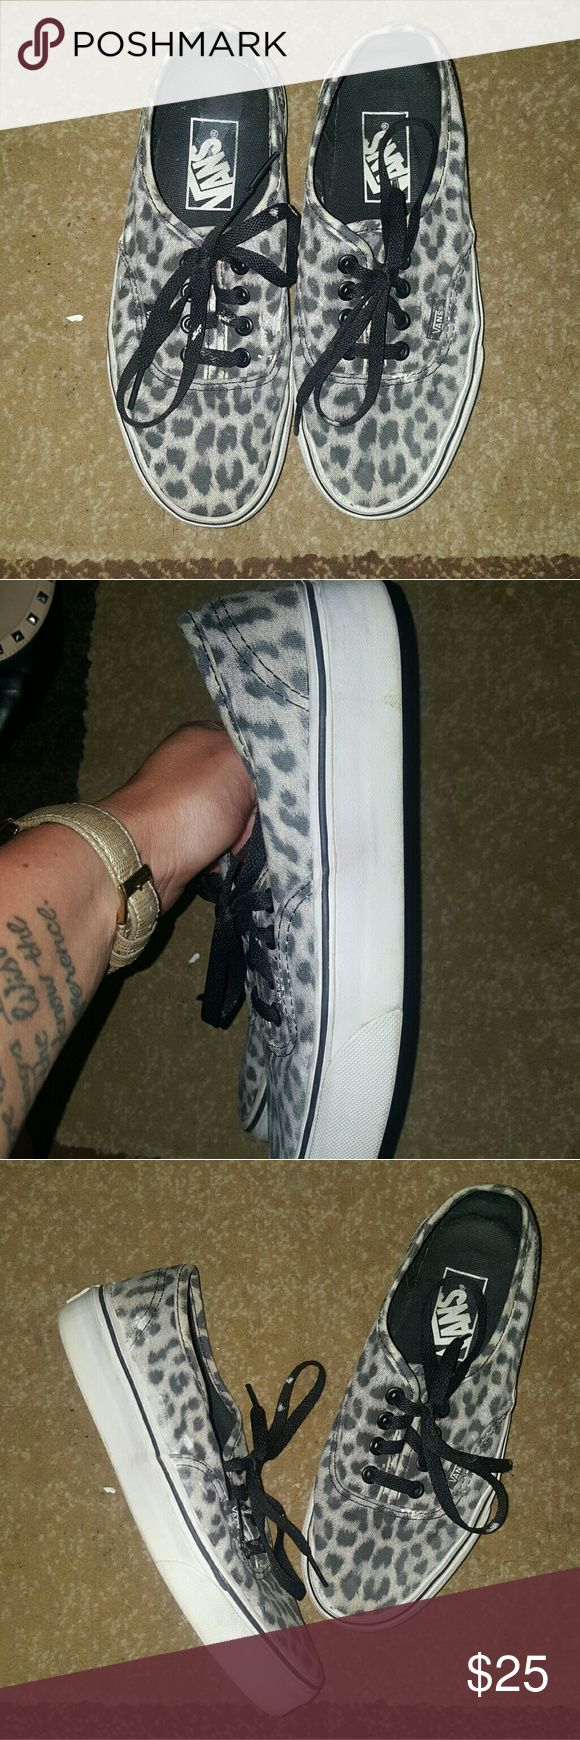 Leopard Vans Pre-loved but have much more life left. Size womens 6 Vans Shoes Sneakers